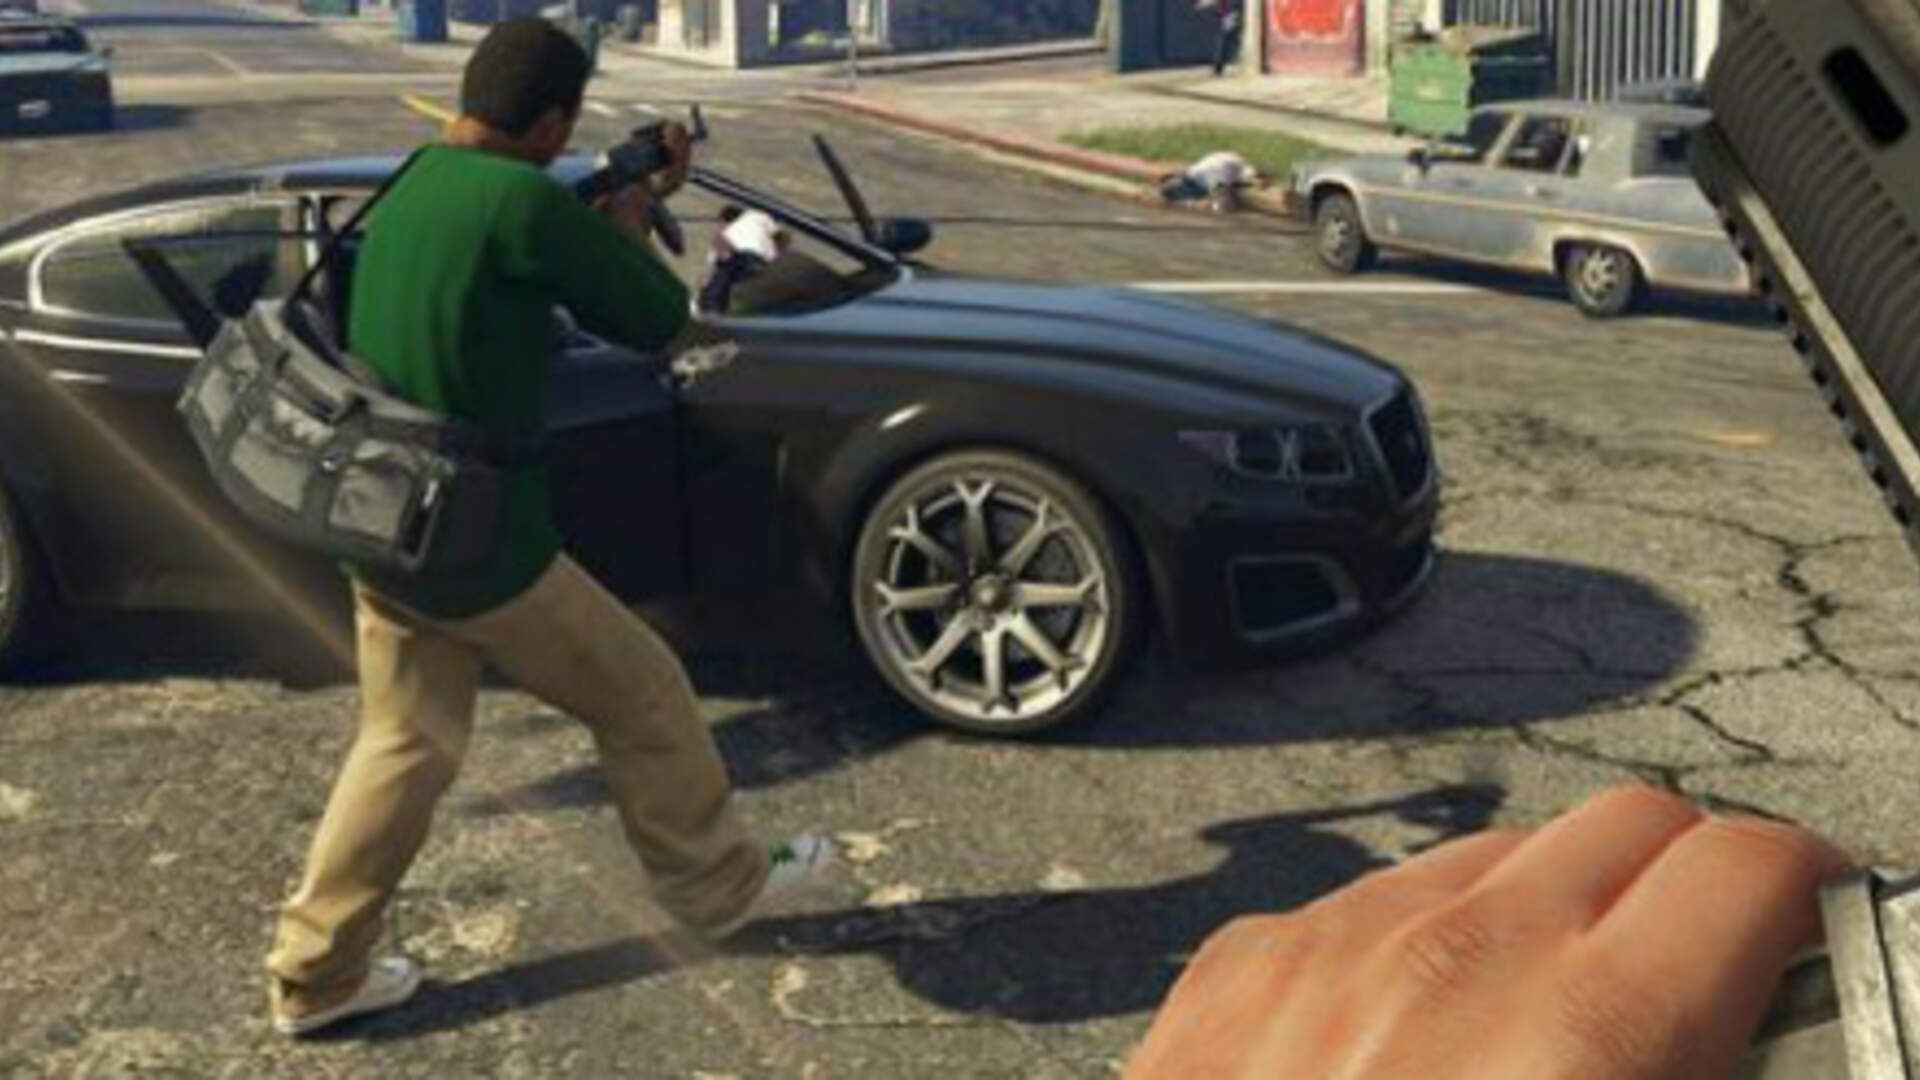 GTA V's First-Person Mode Highlights the Thin Line Between Open-World Games